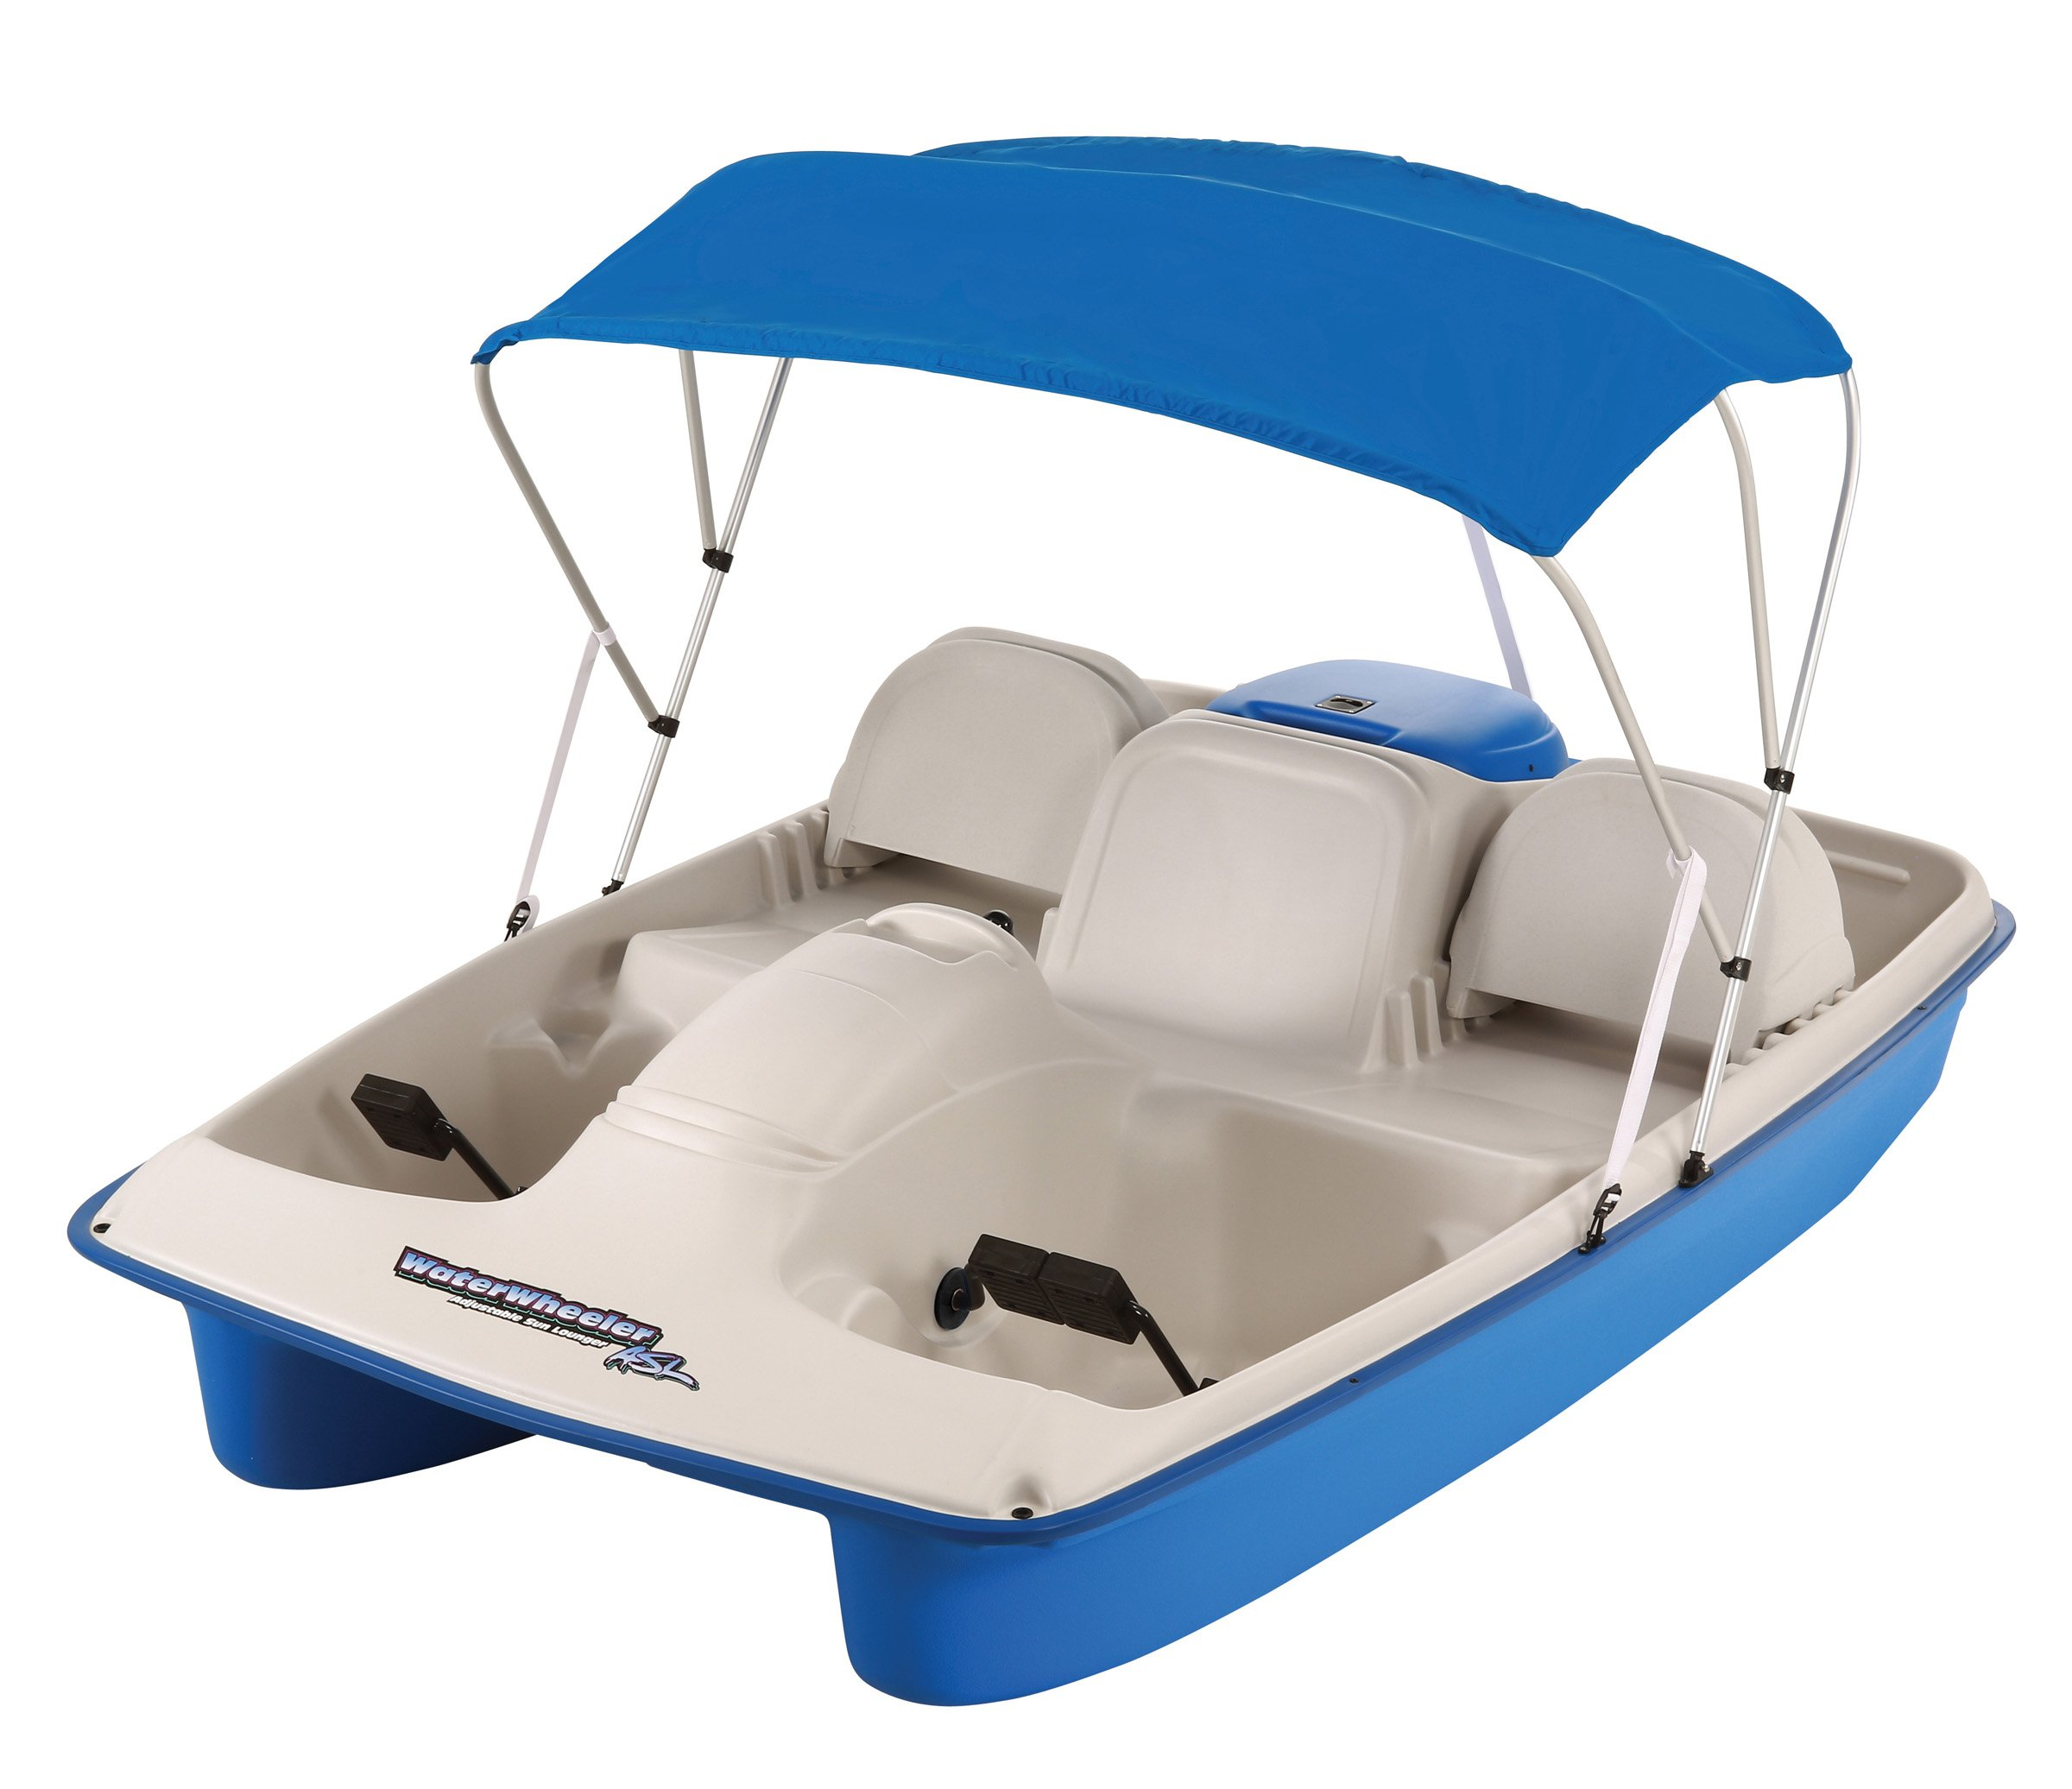 KL Industries Water Wheeler Electric ASL 5 Person Pedal Boat with Canopy by KL Industries